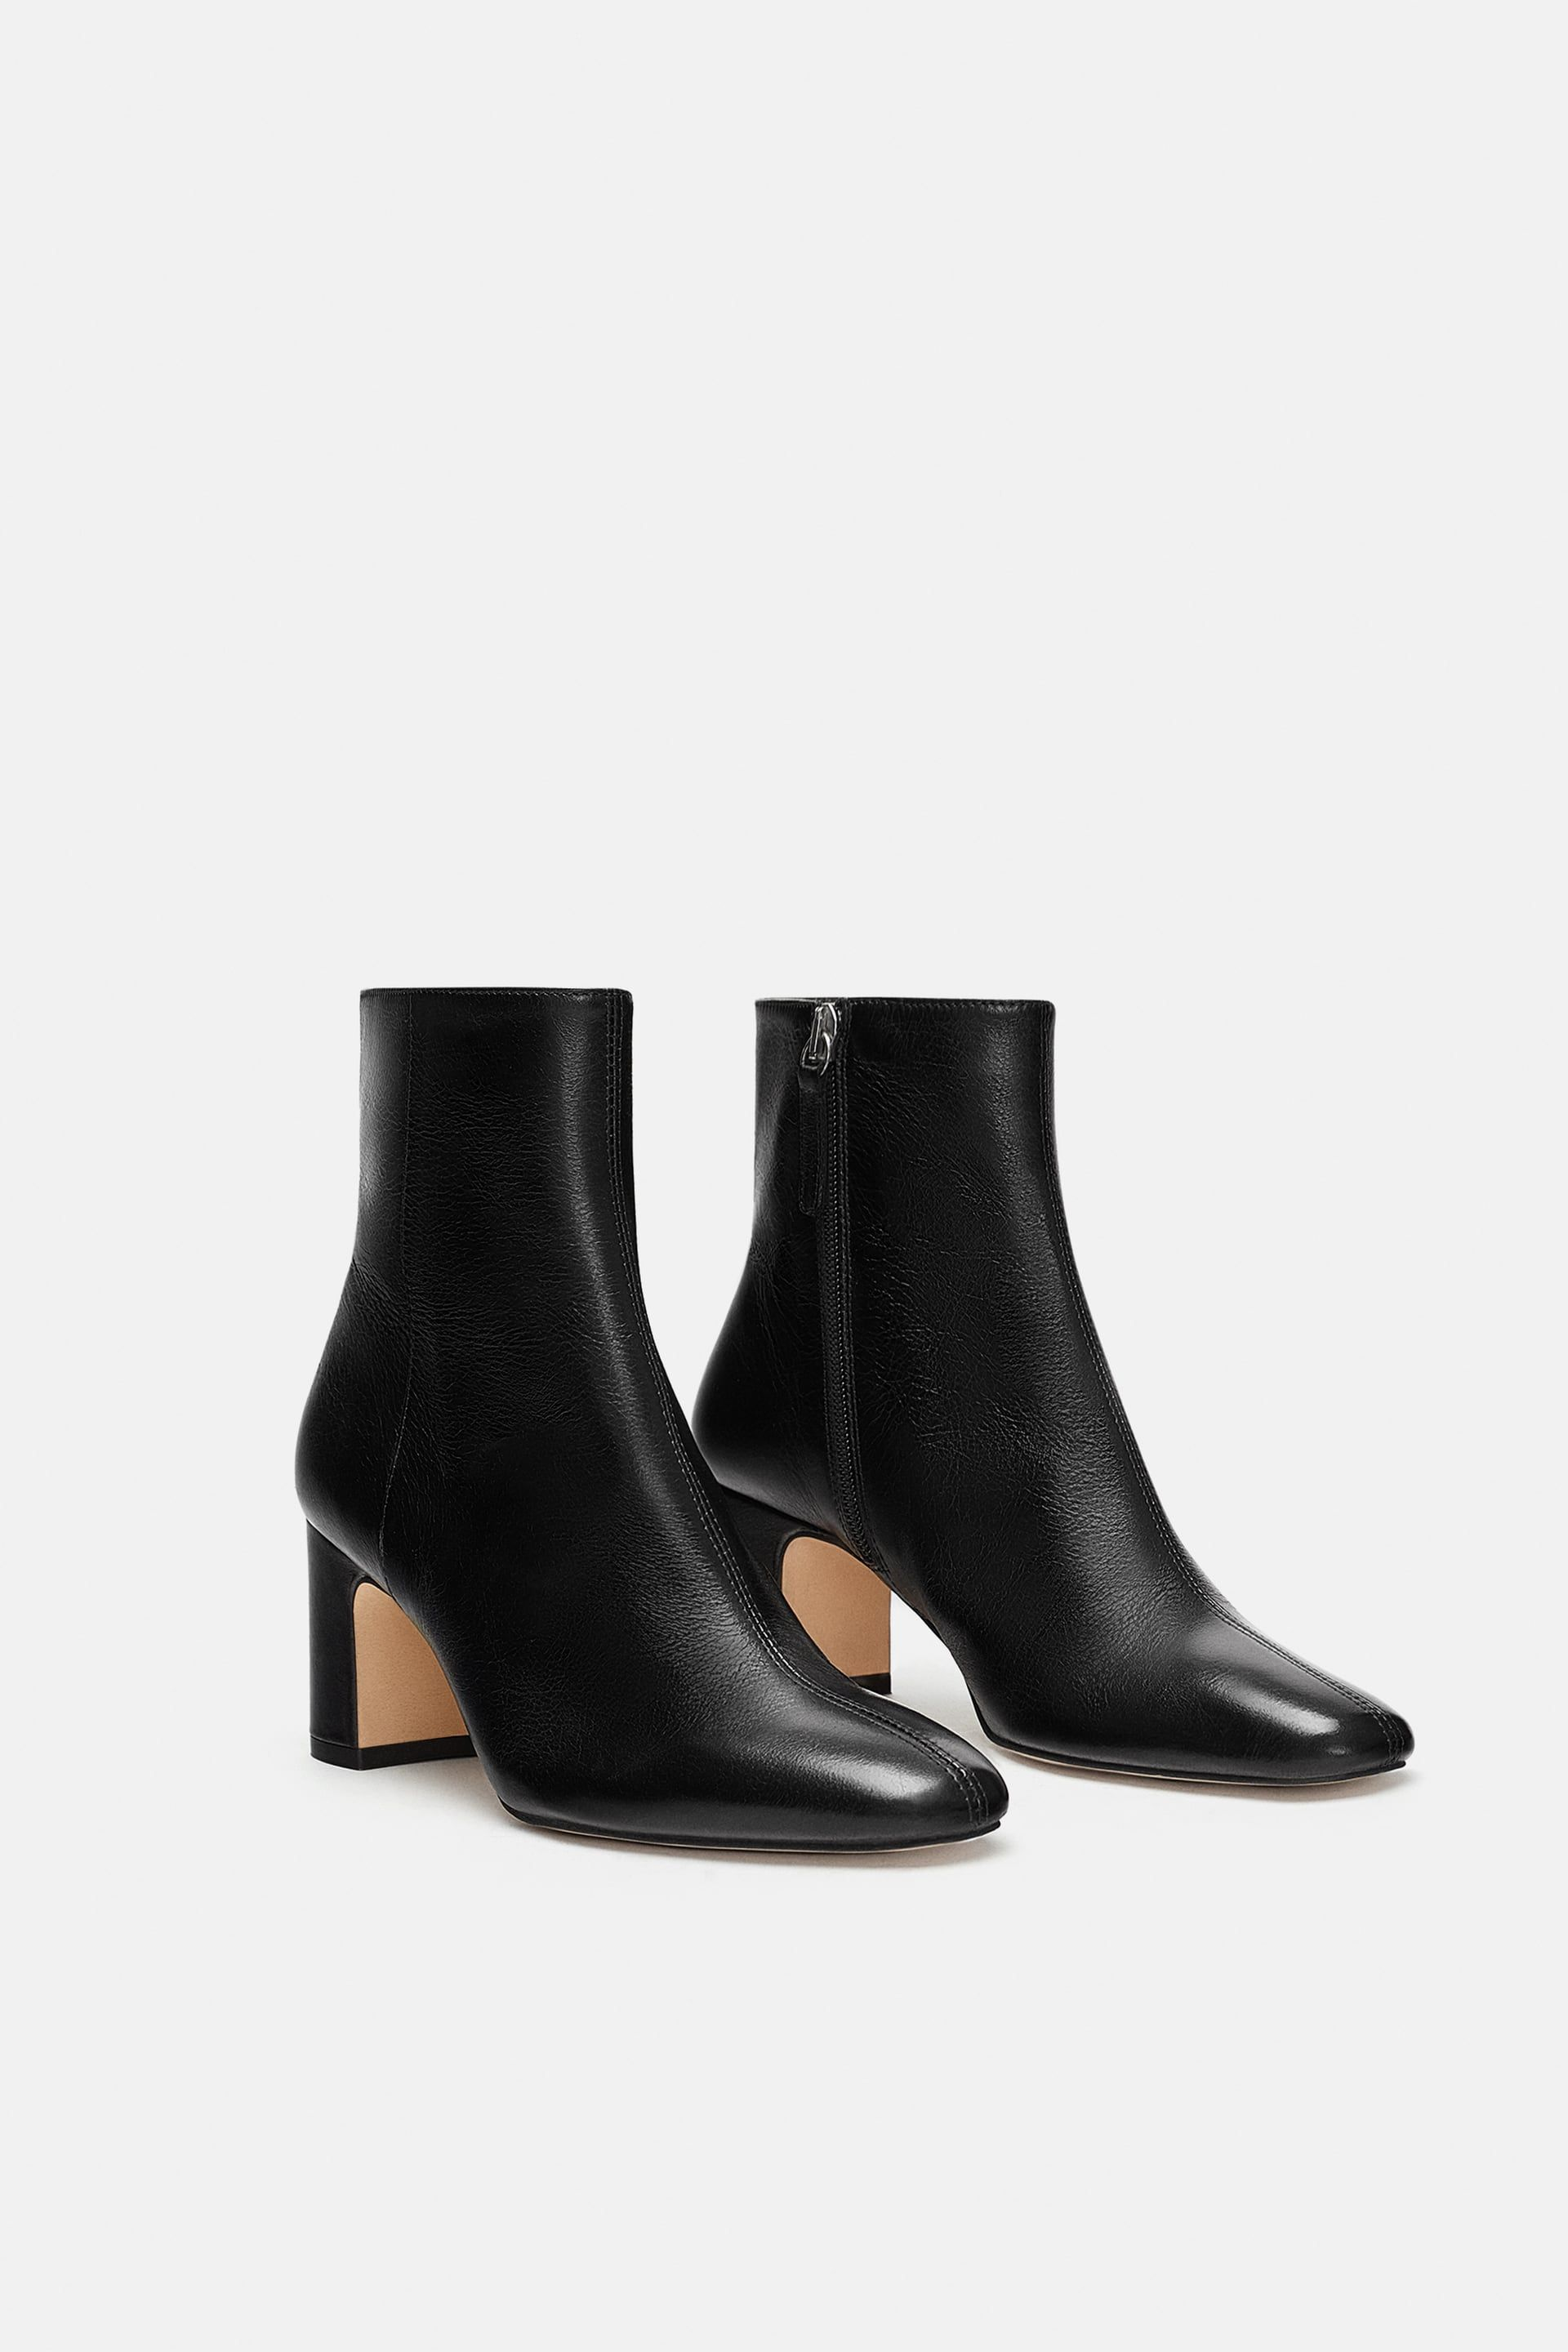 6dc381059bc ZARA - WOMAN - LEATHER HEELED ANKLE BOOTS